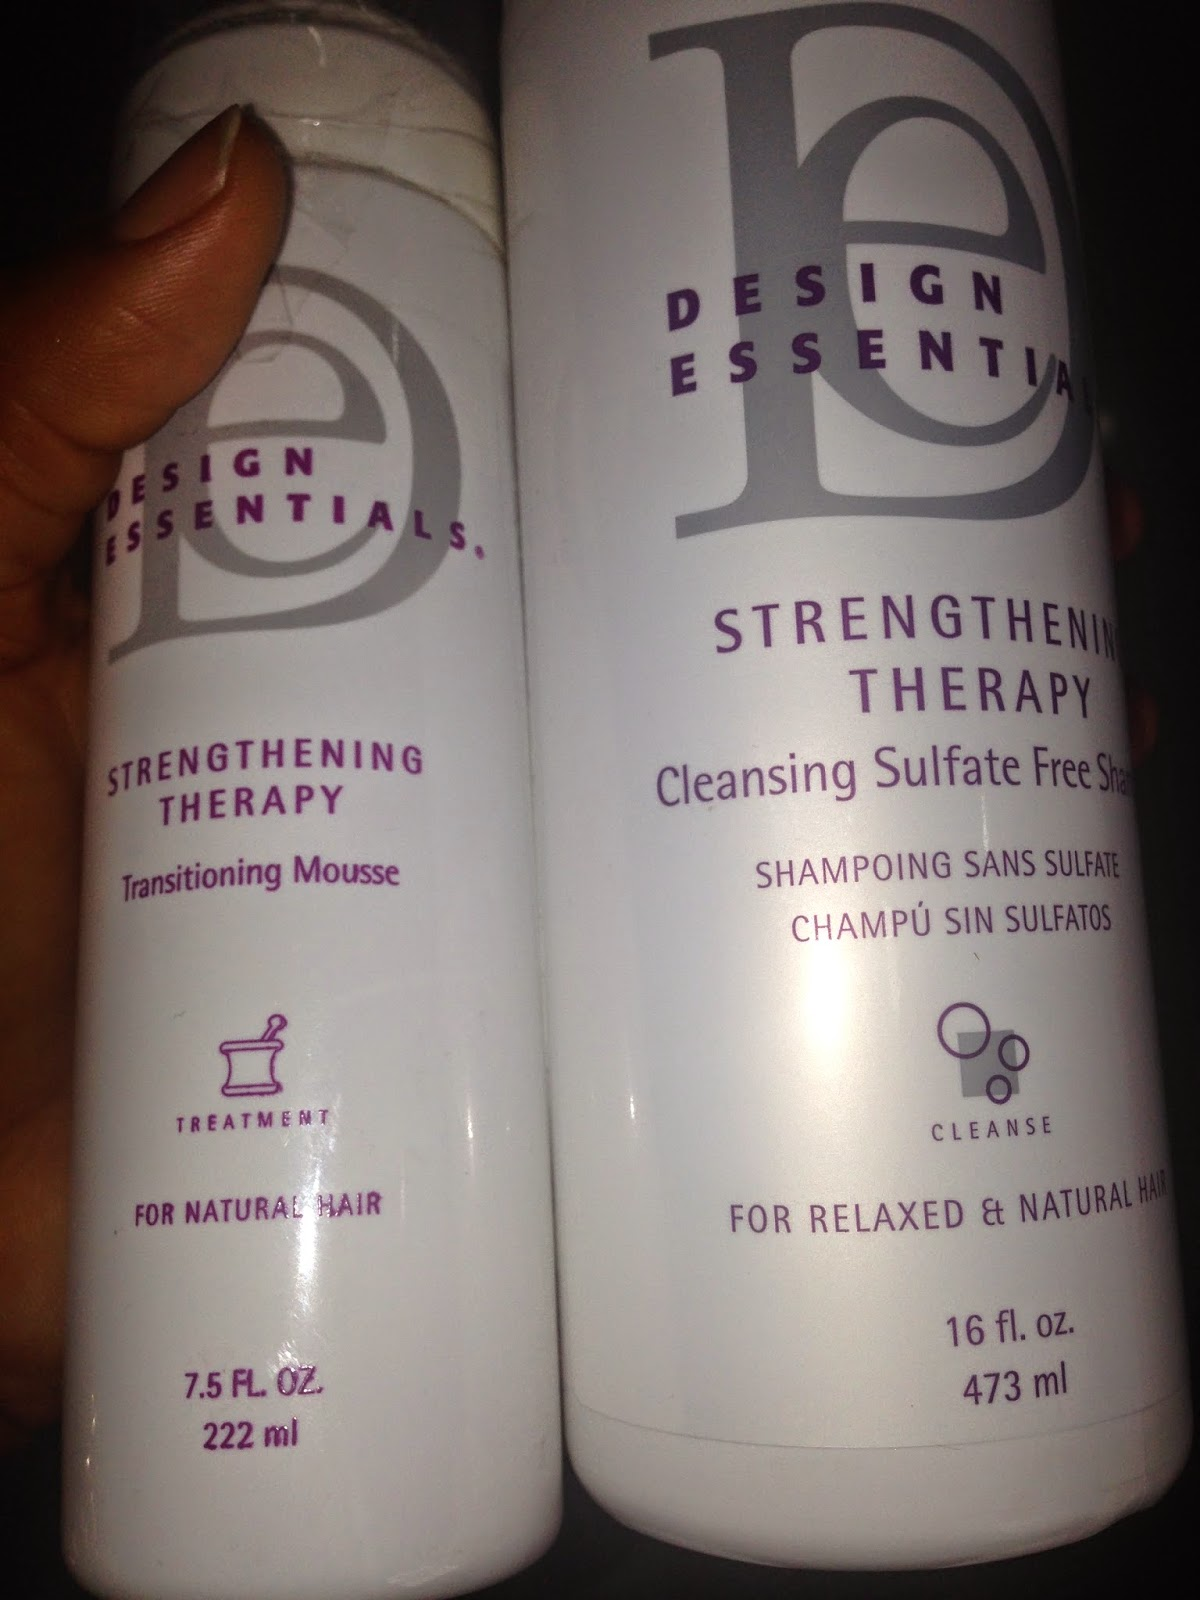 Kl S Naturals Design Essentials Strengthening Therapy System Sts Results